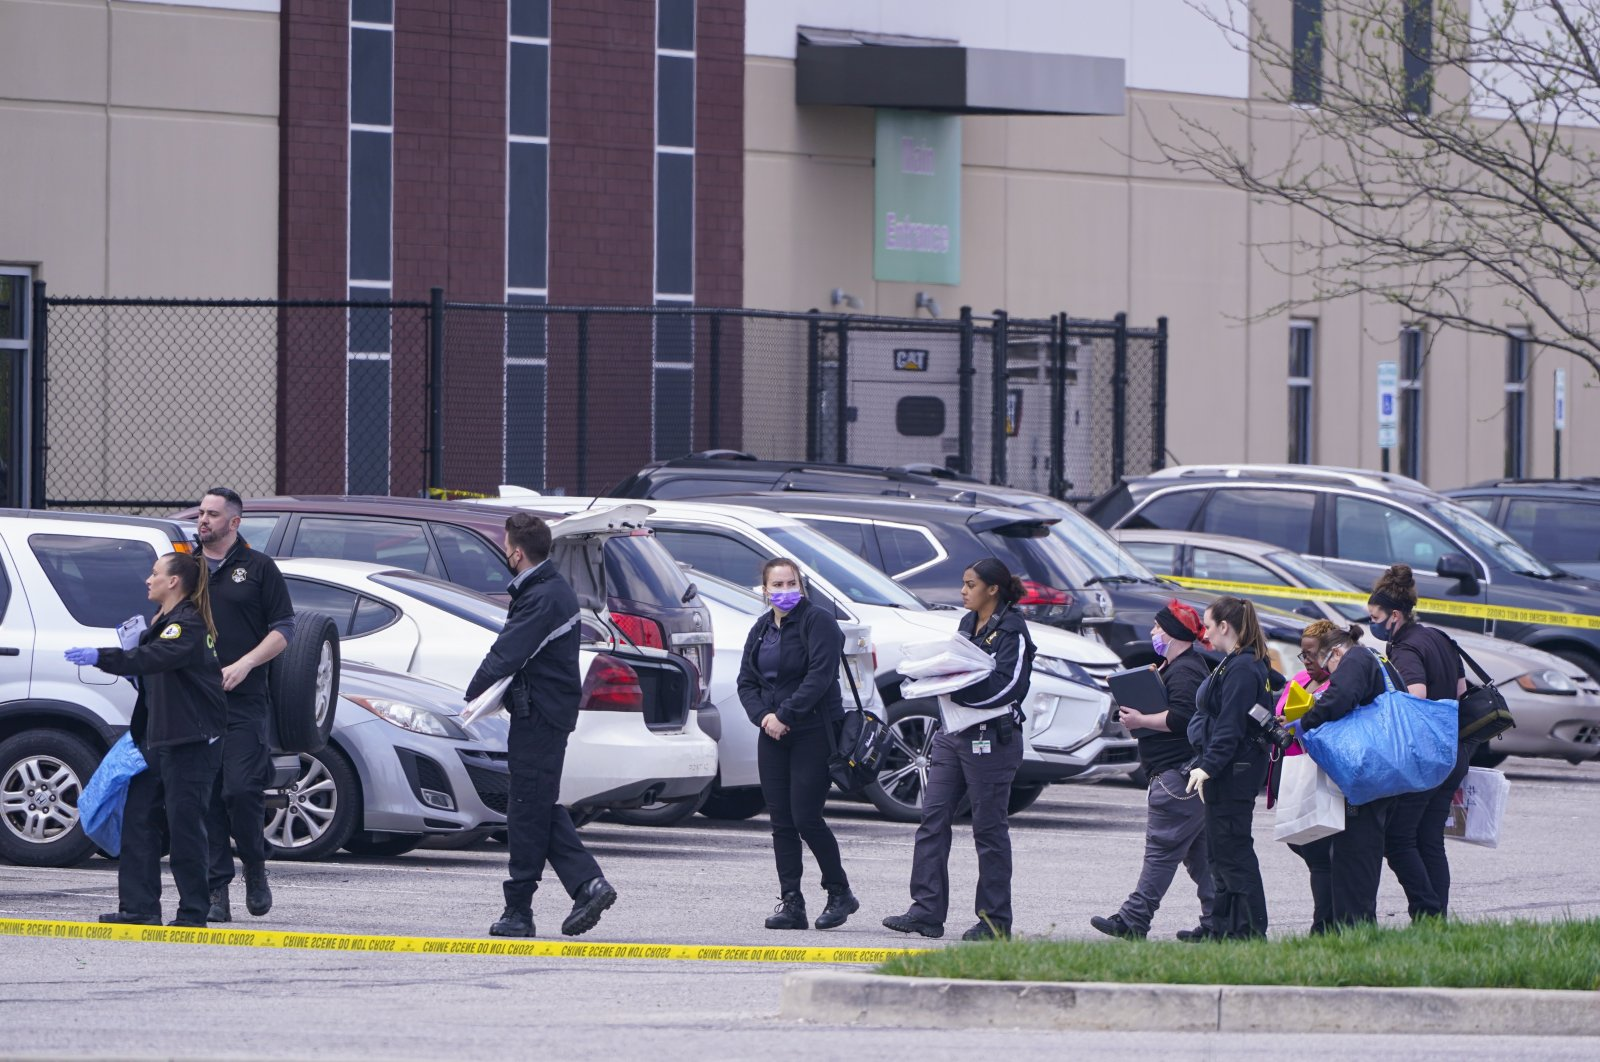 Law enforcement confer at the scene in Indianapolis, where multiple people were shot at a FedEx Ground facility near the Indianapolis airport, U.S., April 16, 2021. (AP Photo)